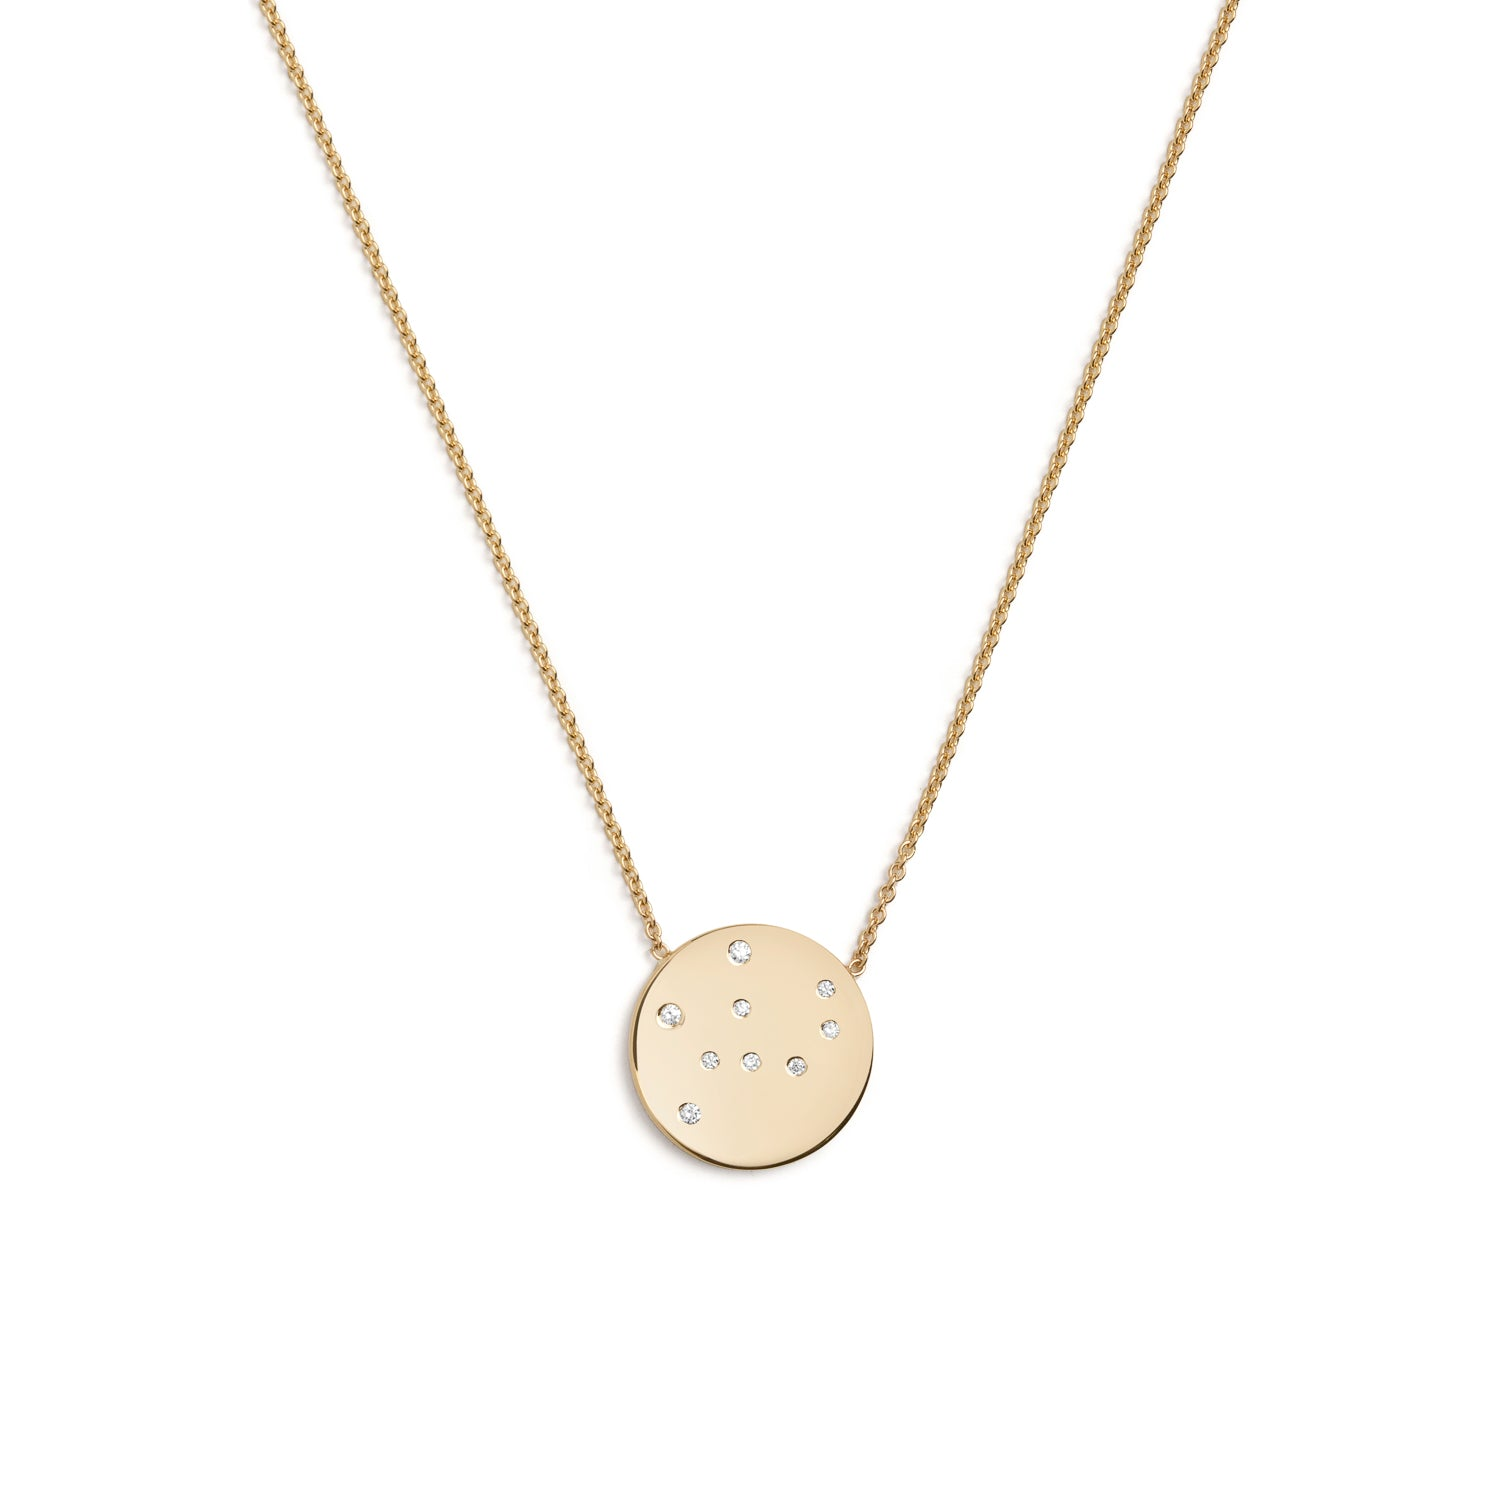 Virgo Star Sign Necklace in Gold